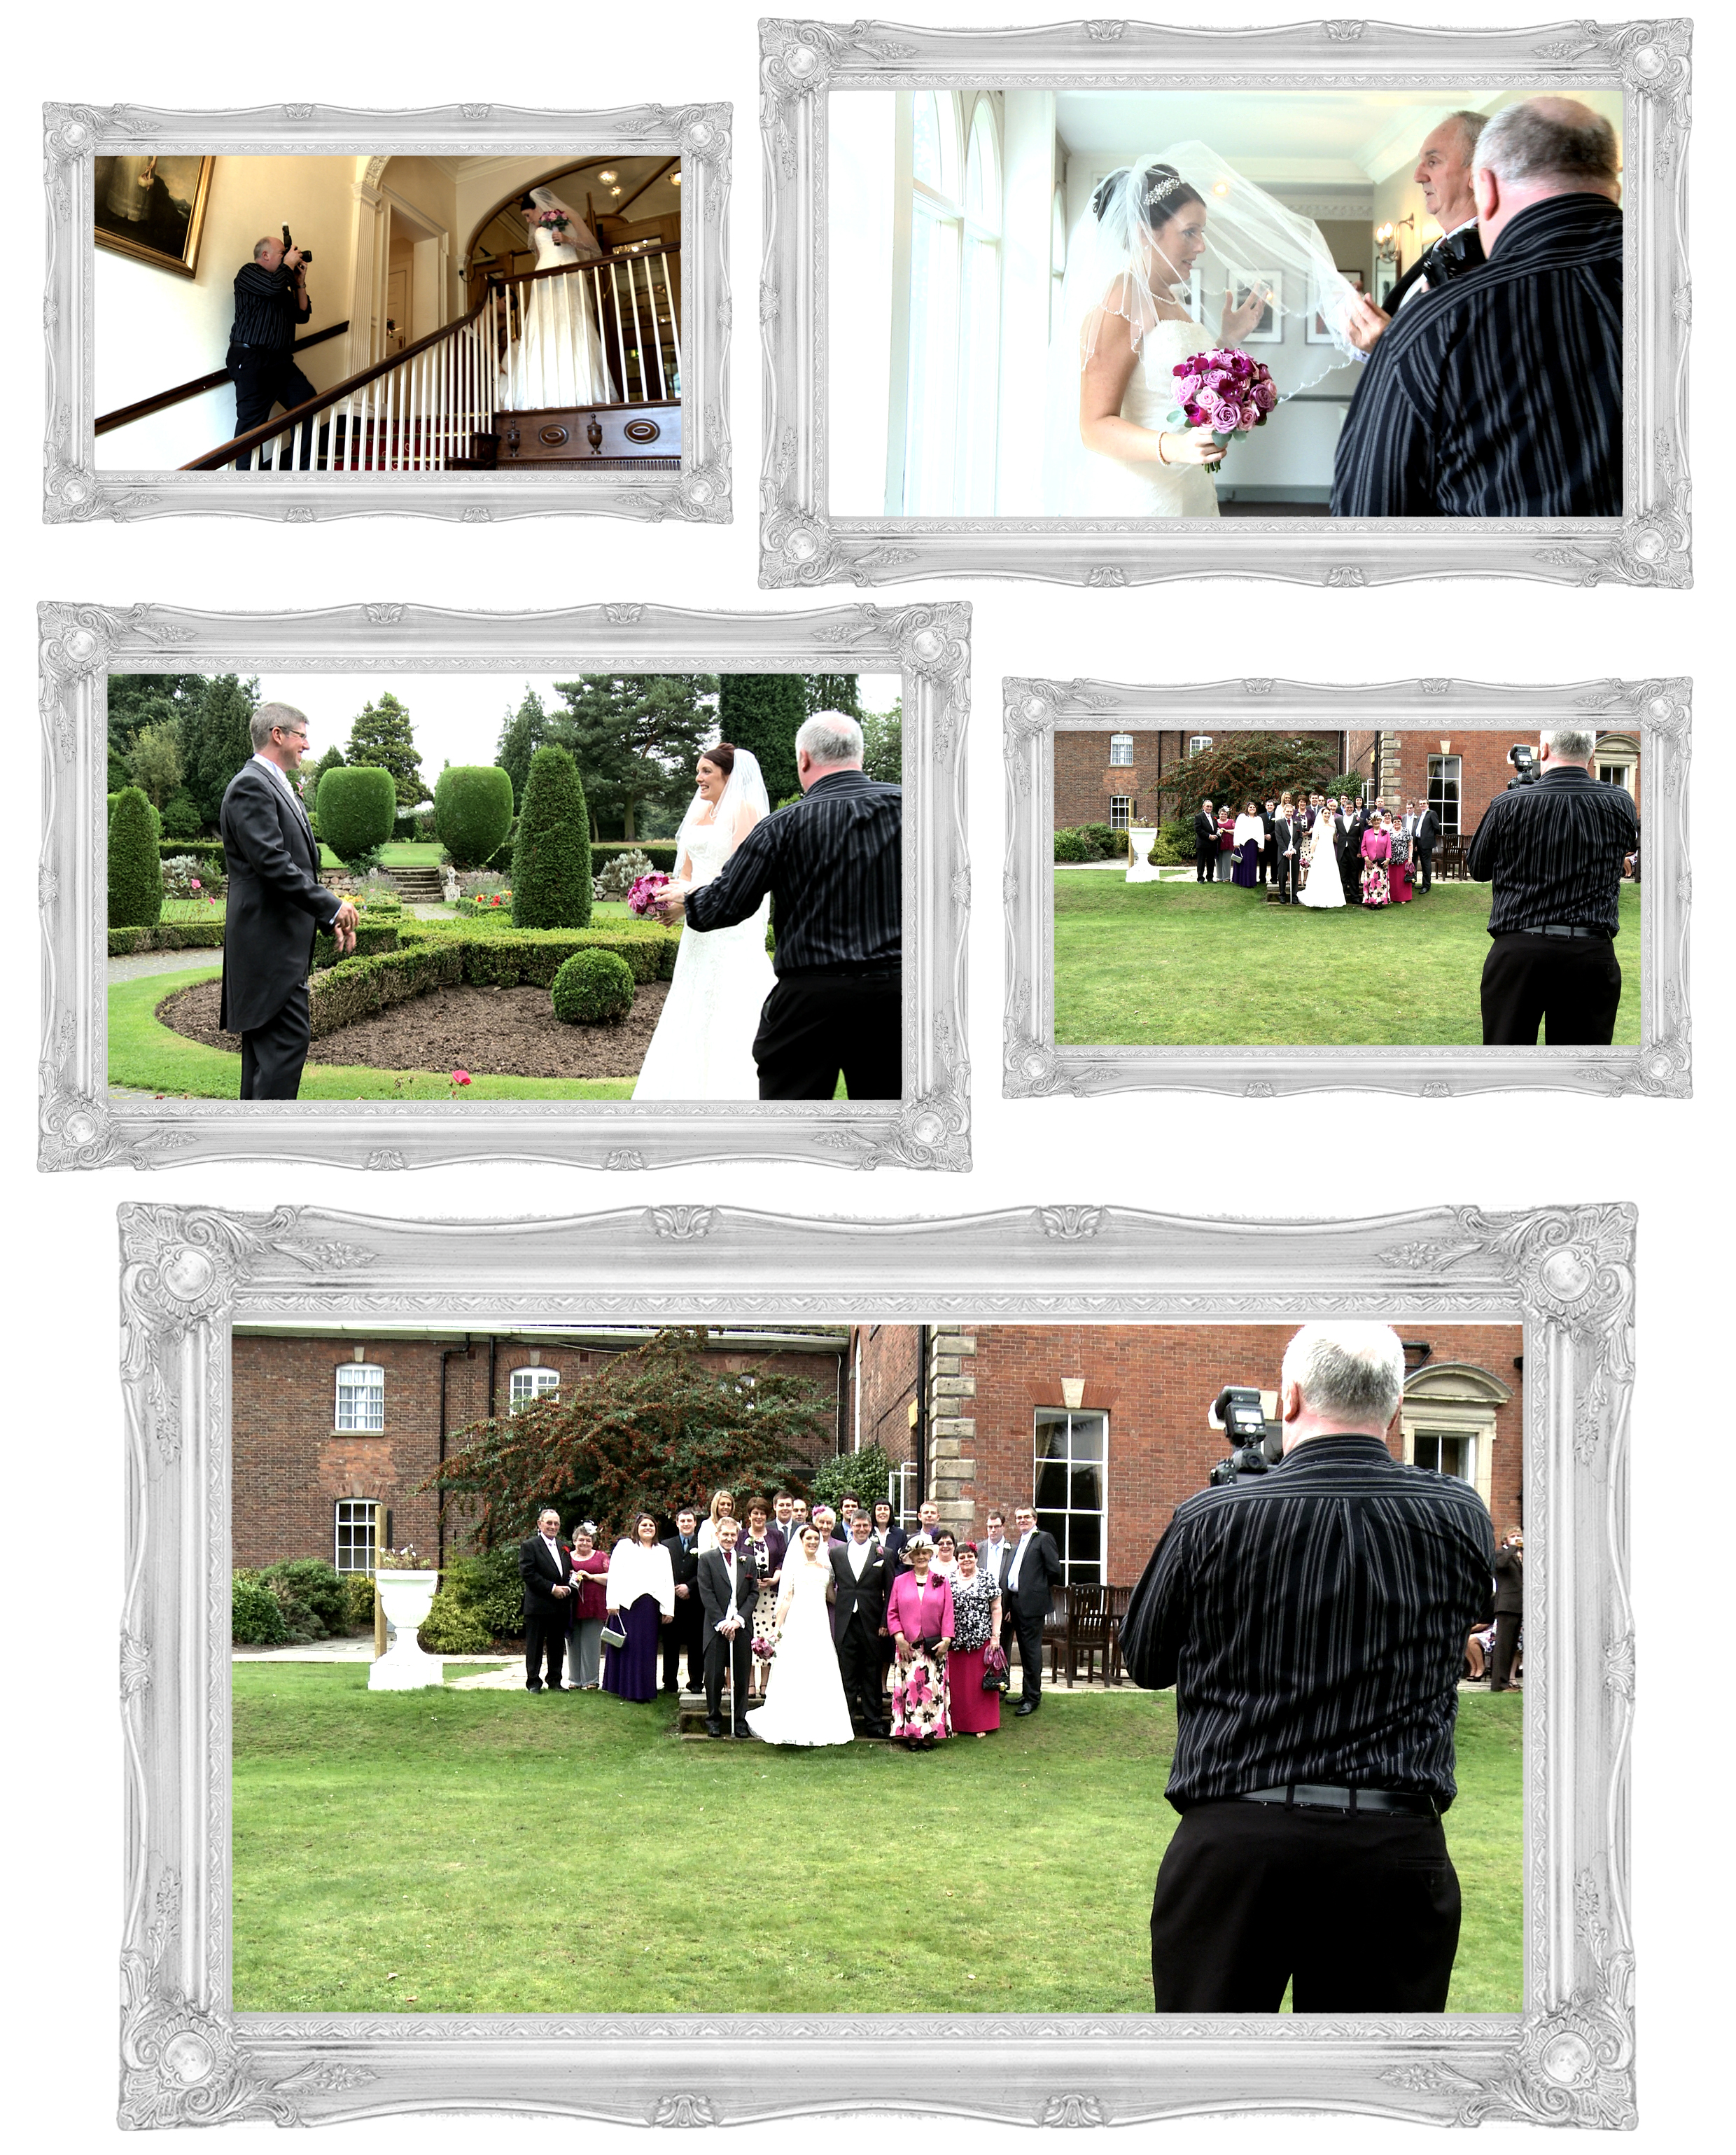 Wedding Photographer or Videographer, or both?